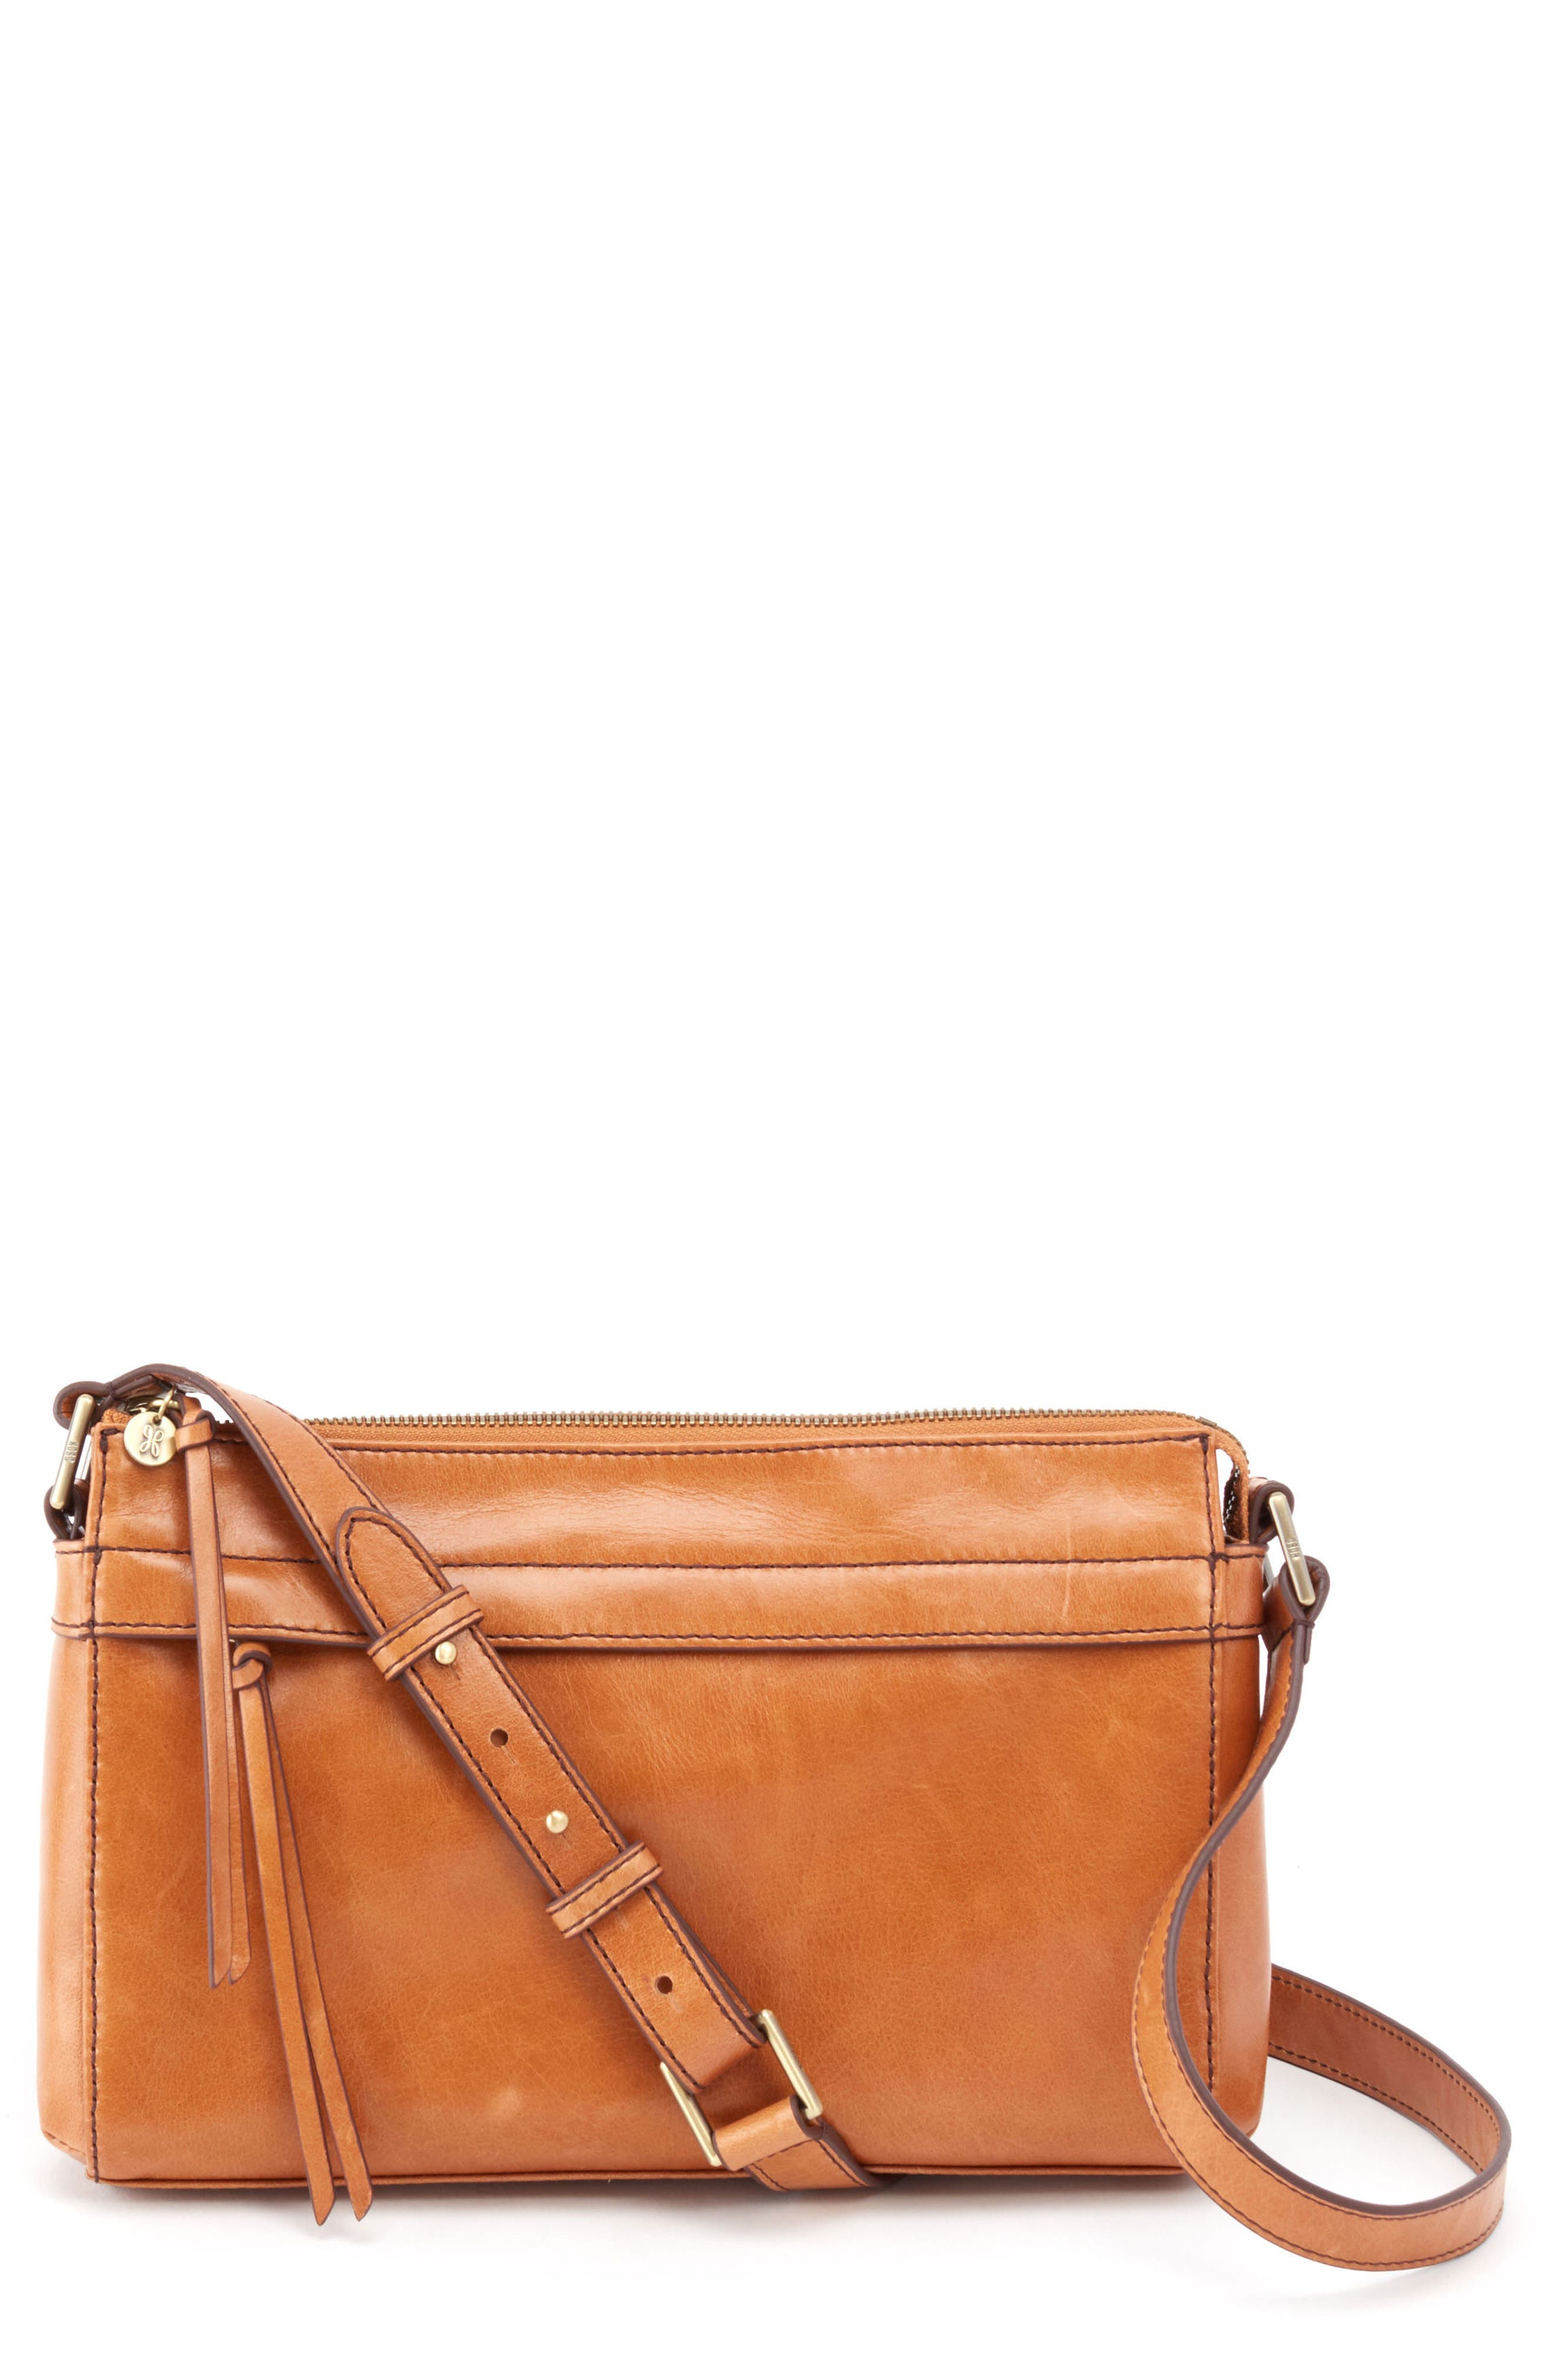 Tobey Leather Crossbody Bag,                             Main thumbnail 3, color,